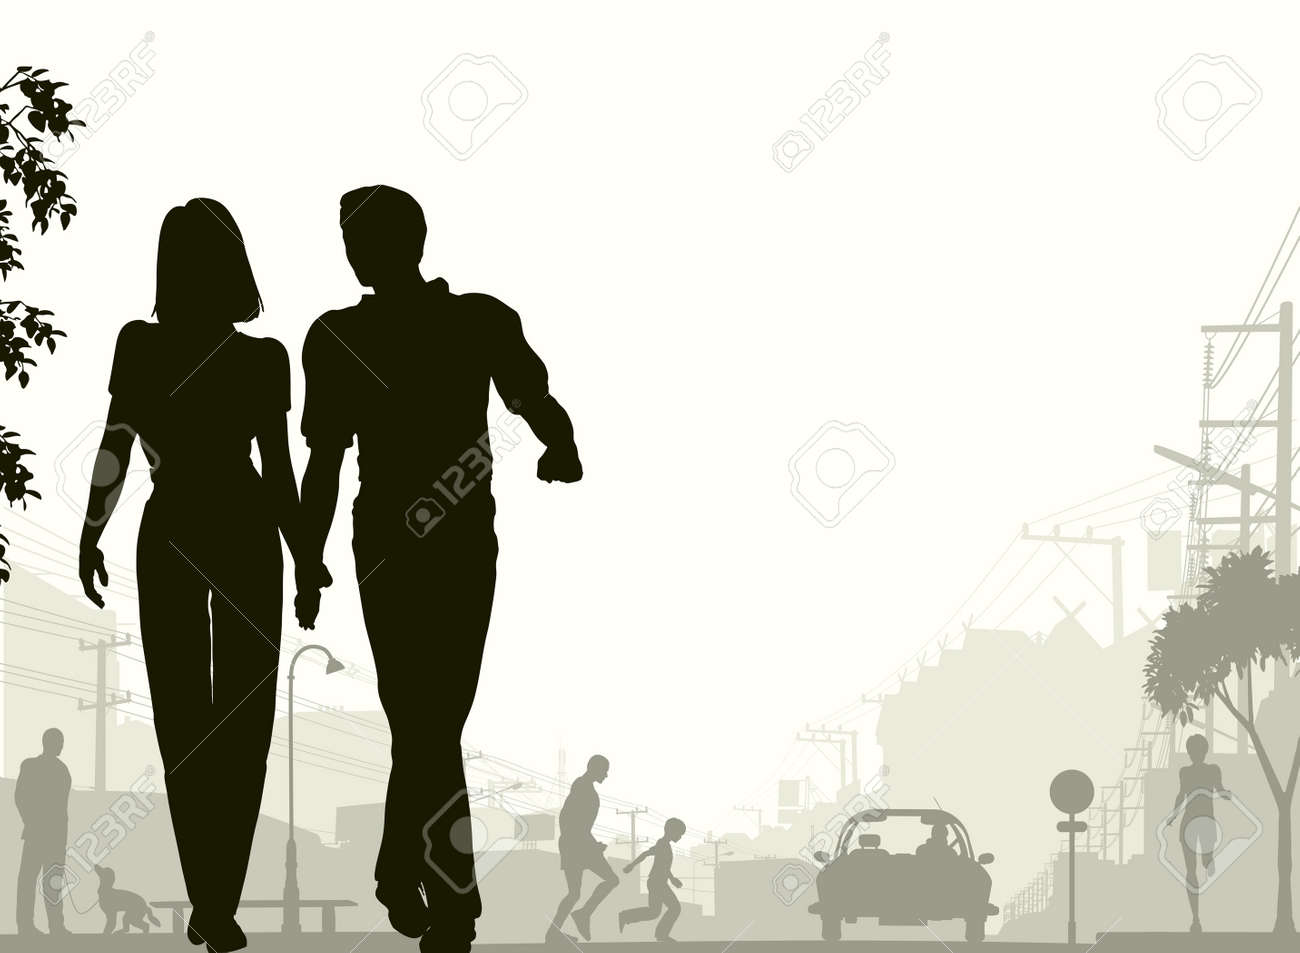 Editable silhouette of a couple walking down a street with all silhouette elements as separate objects. Stock Vector - 6163256